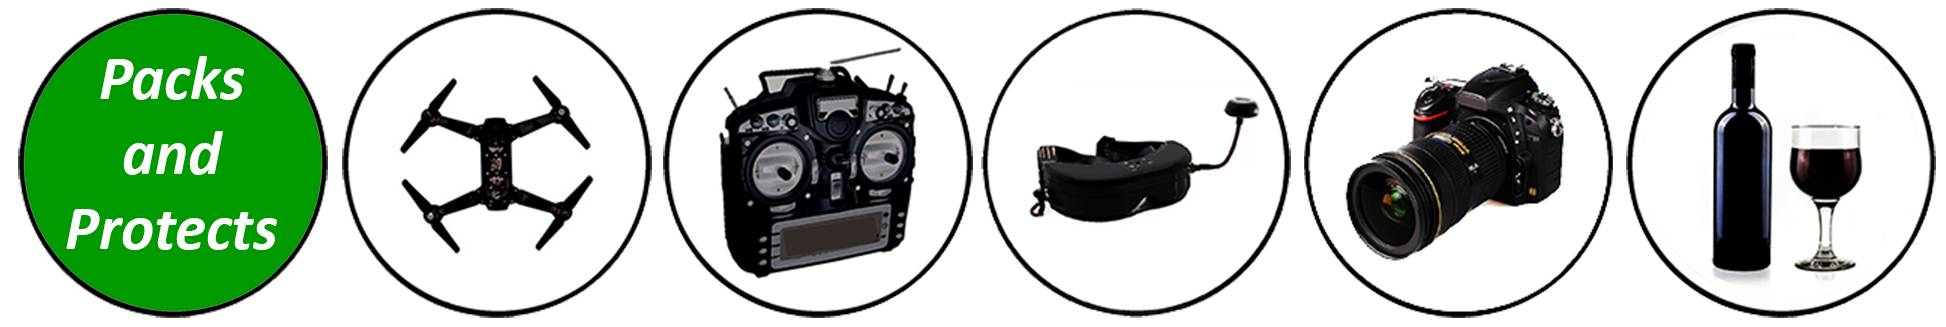 Chair-Pak FPV Pak packs and protects